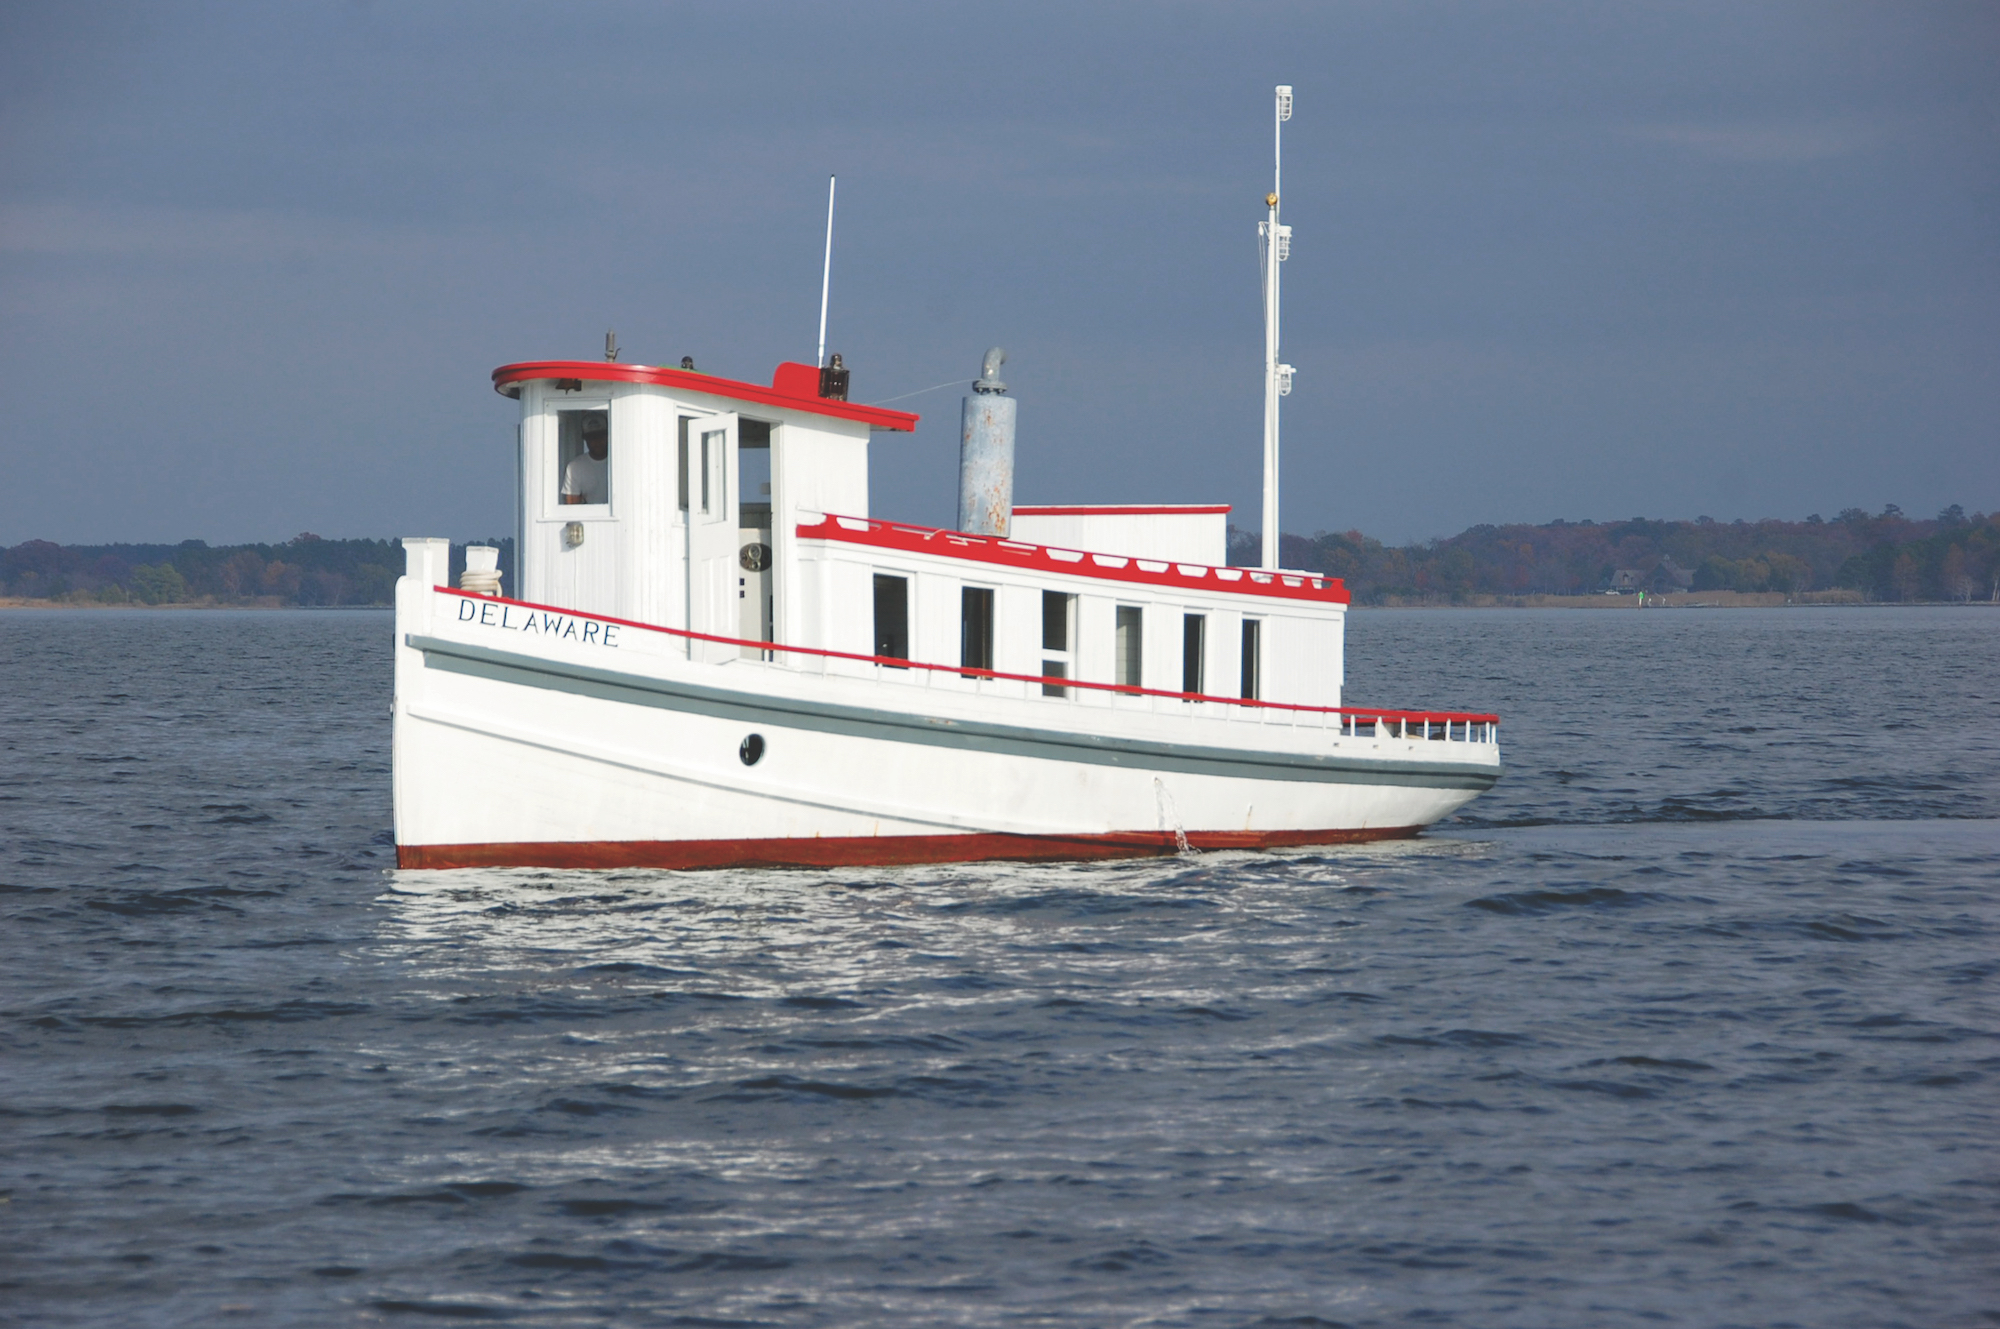 The Chesapeake Bay Maritime Museum will begin a restoration of 1912 tug  Delaware  this winter, following the relaunch of 1889 bugeye  Edna E. Lockwood  in October. To learn more, visit  cbmm.org.